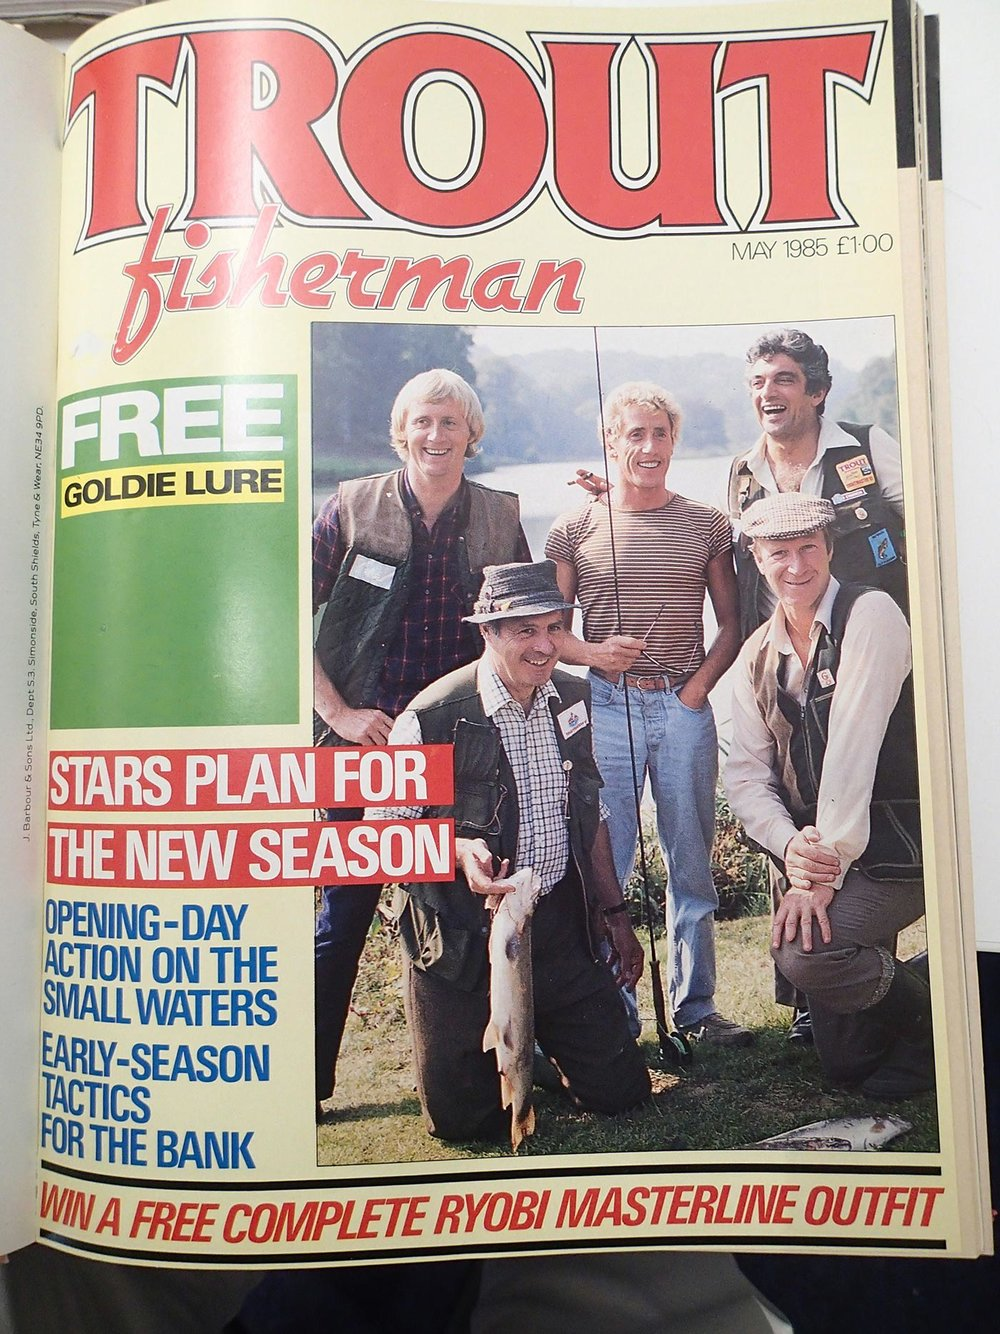 Possibly the closest our orbit ever came to that of 'Hello!' – four-and-a-half household names (Leonard Parkin was a newsreader, we had to remind ourselves) on the Trout Fisherman cover.